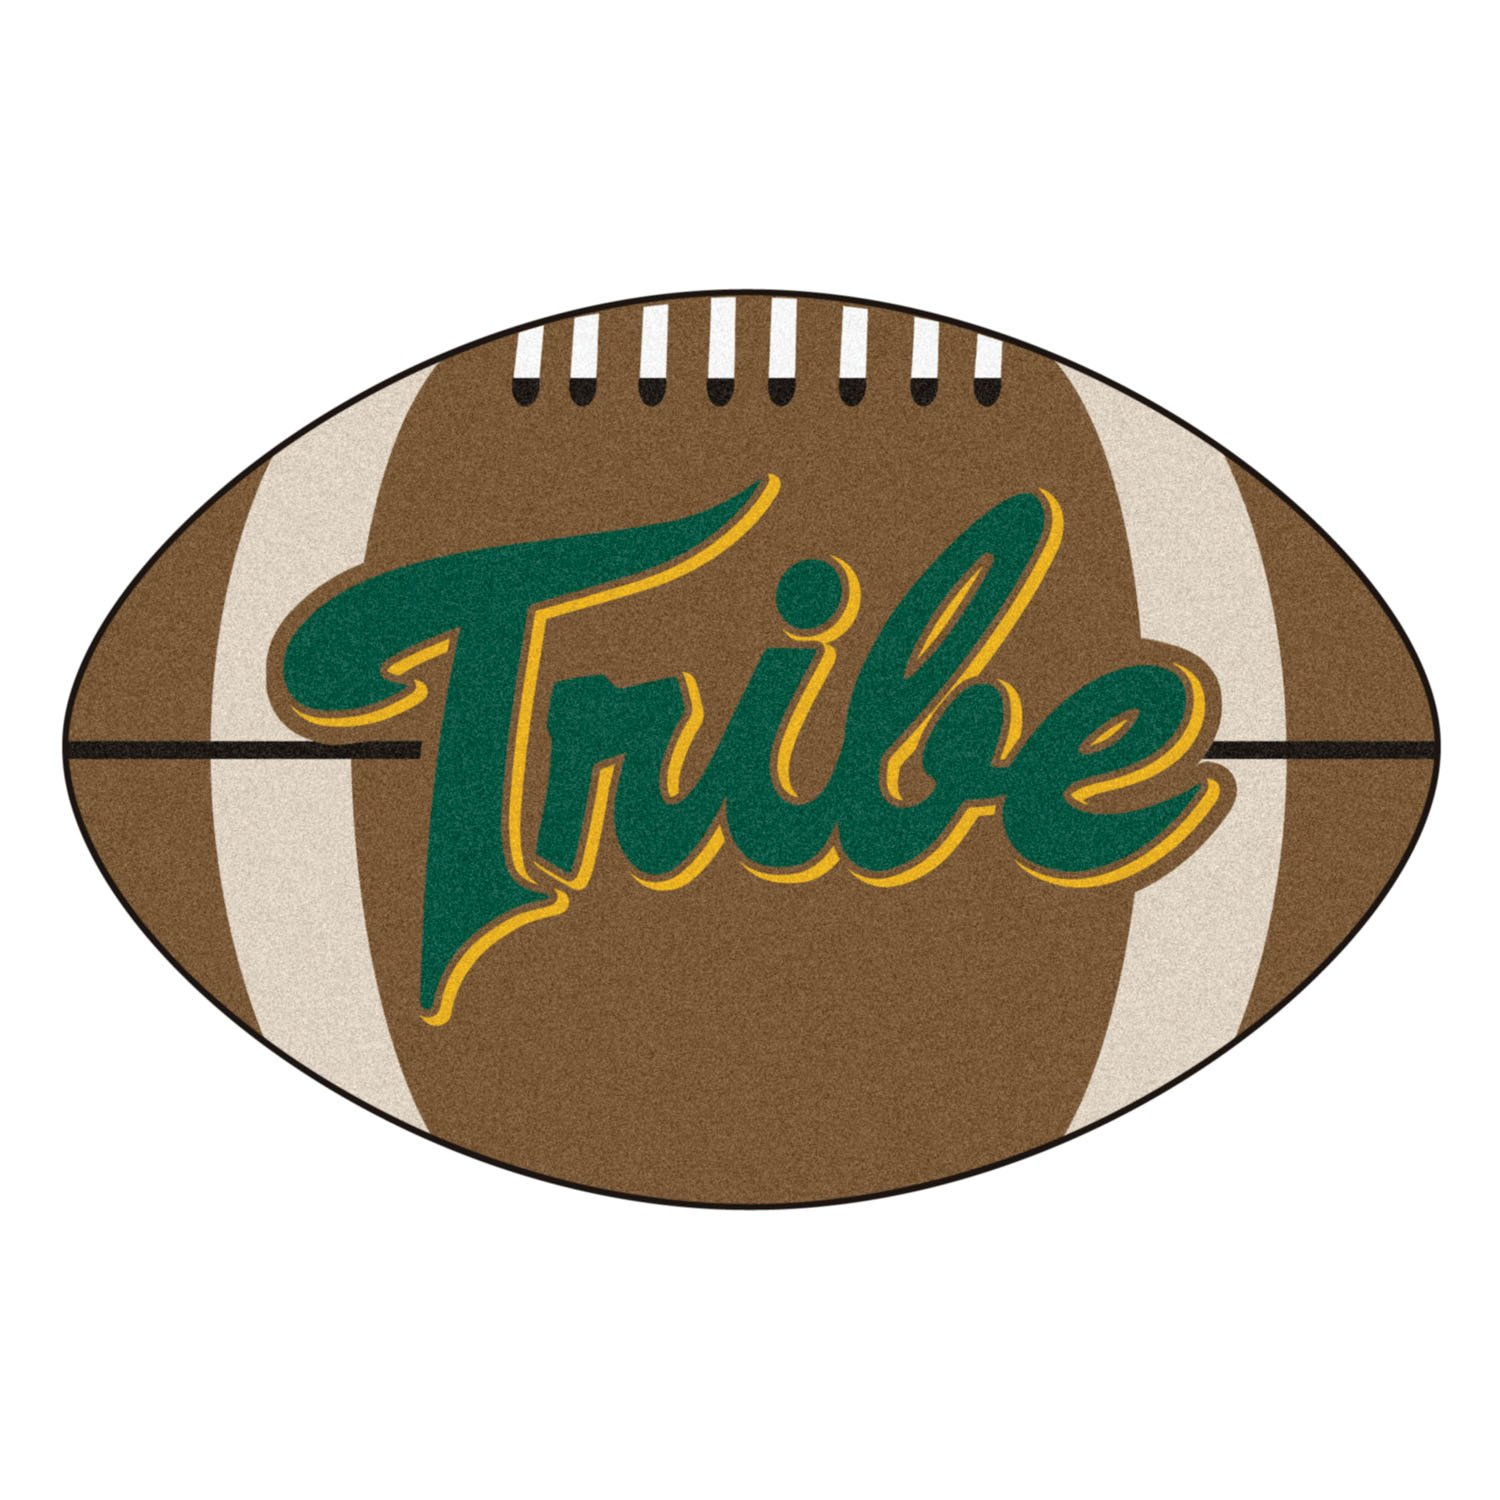 Fanmats College of William & Mary Football Rug 22'''' x35